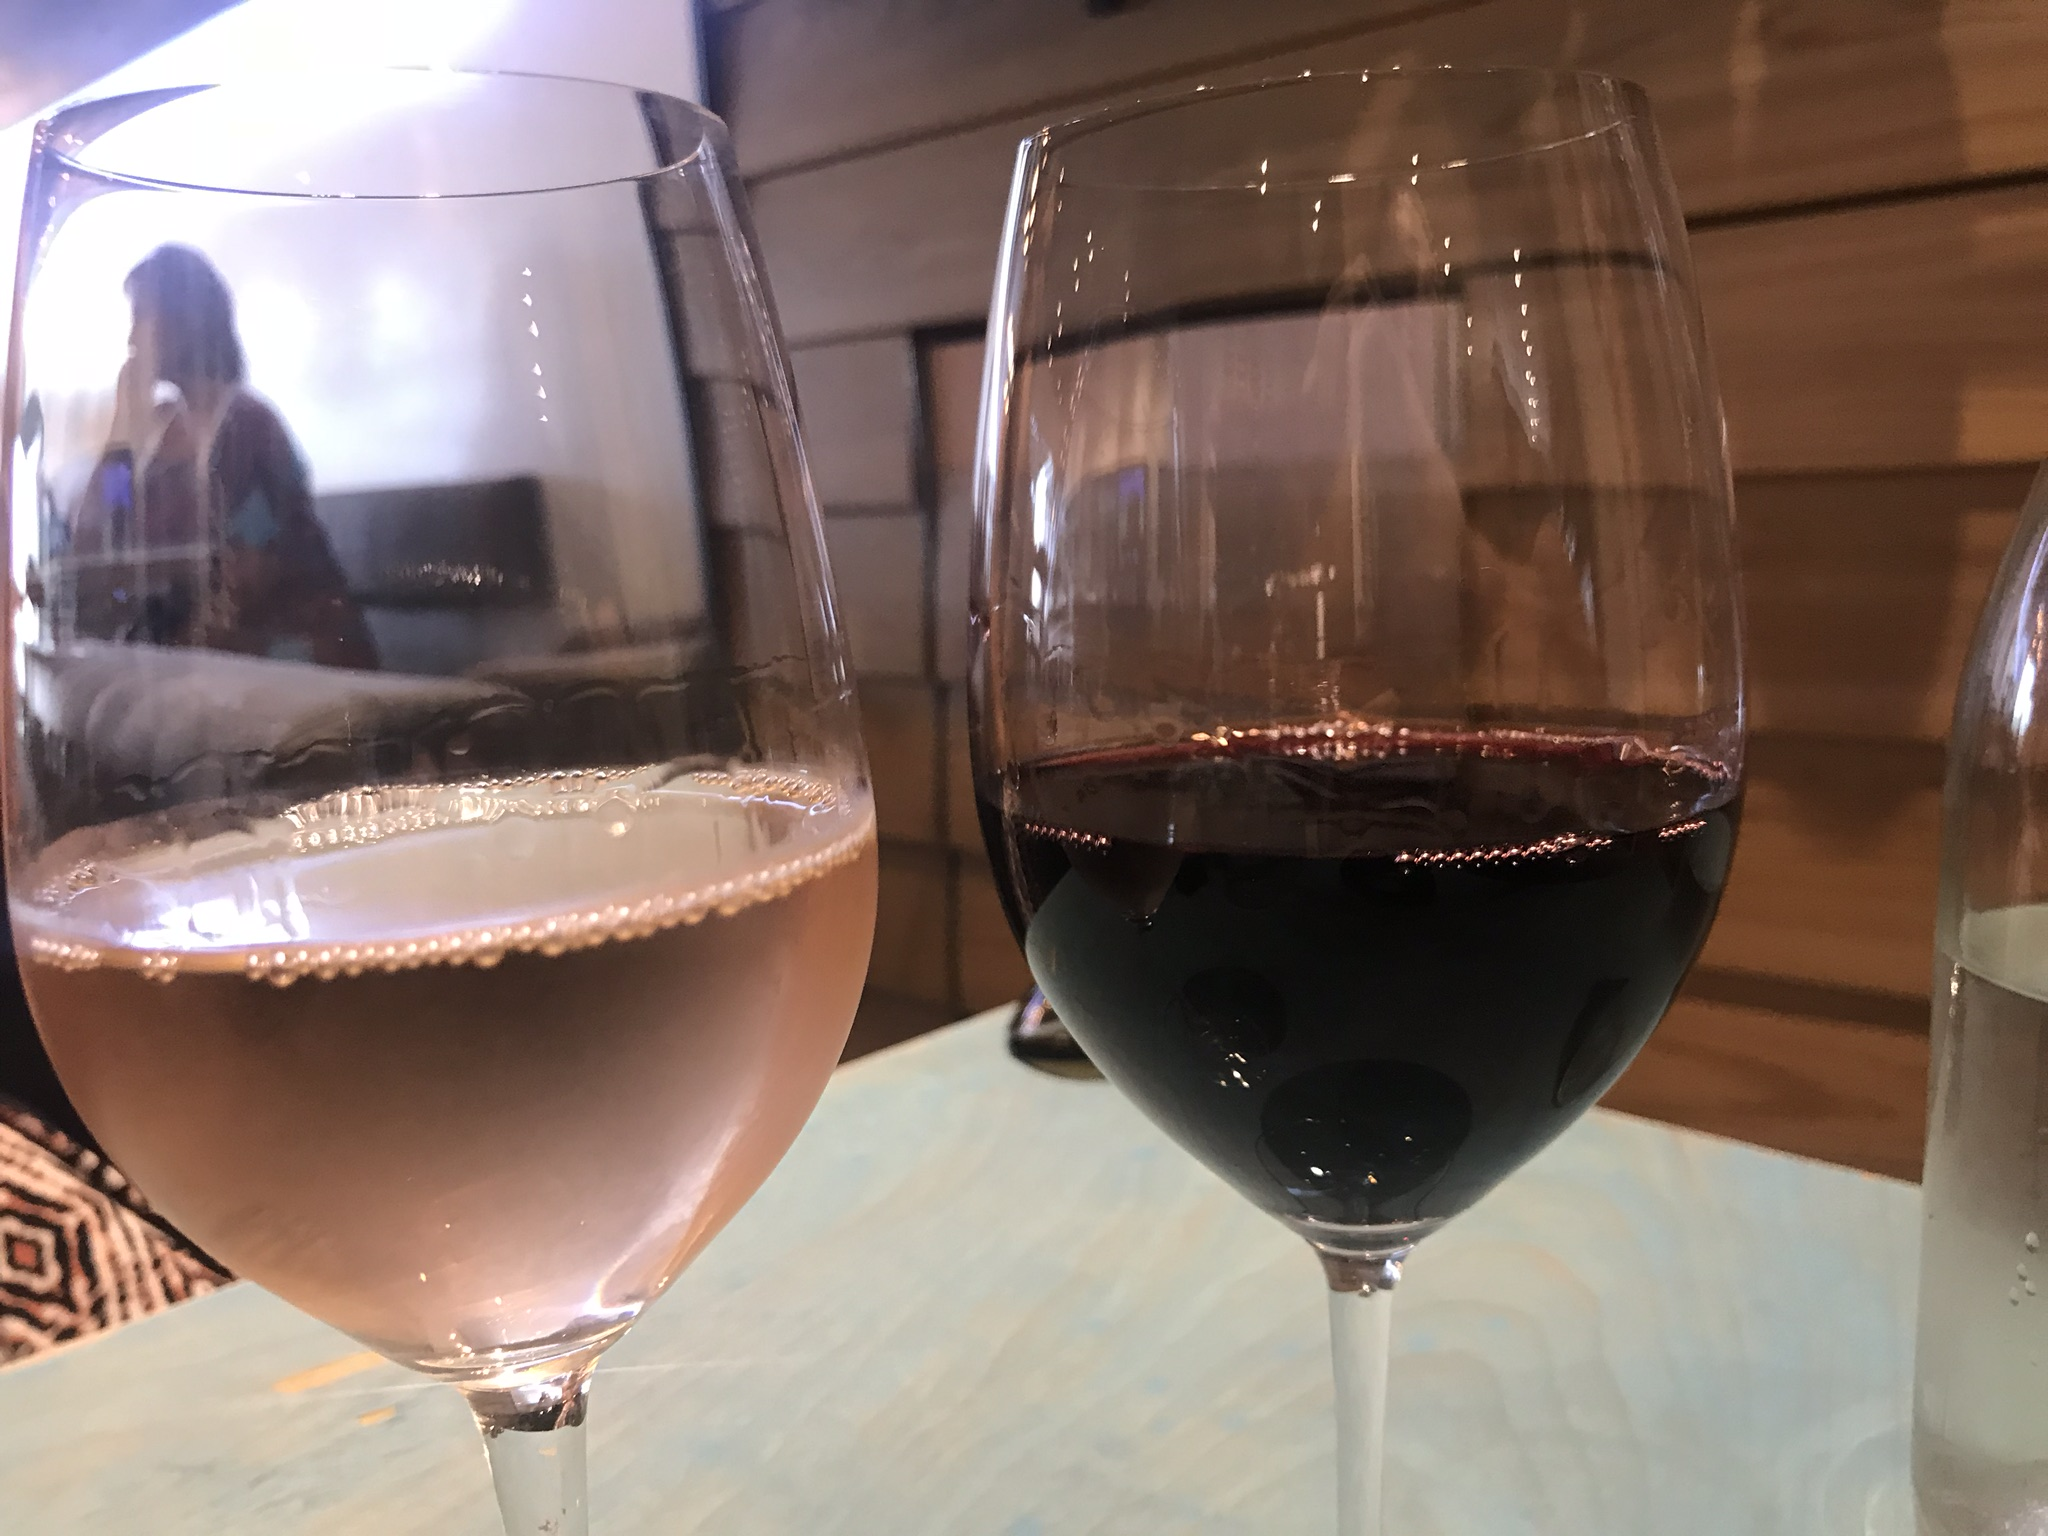 Wine at Nectar in Spokane – July 29 2018